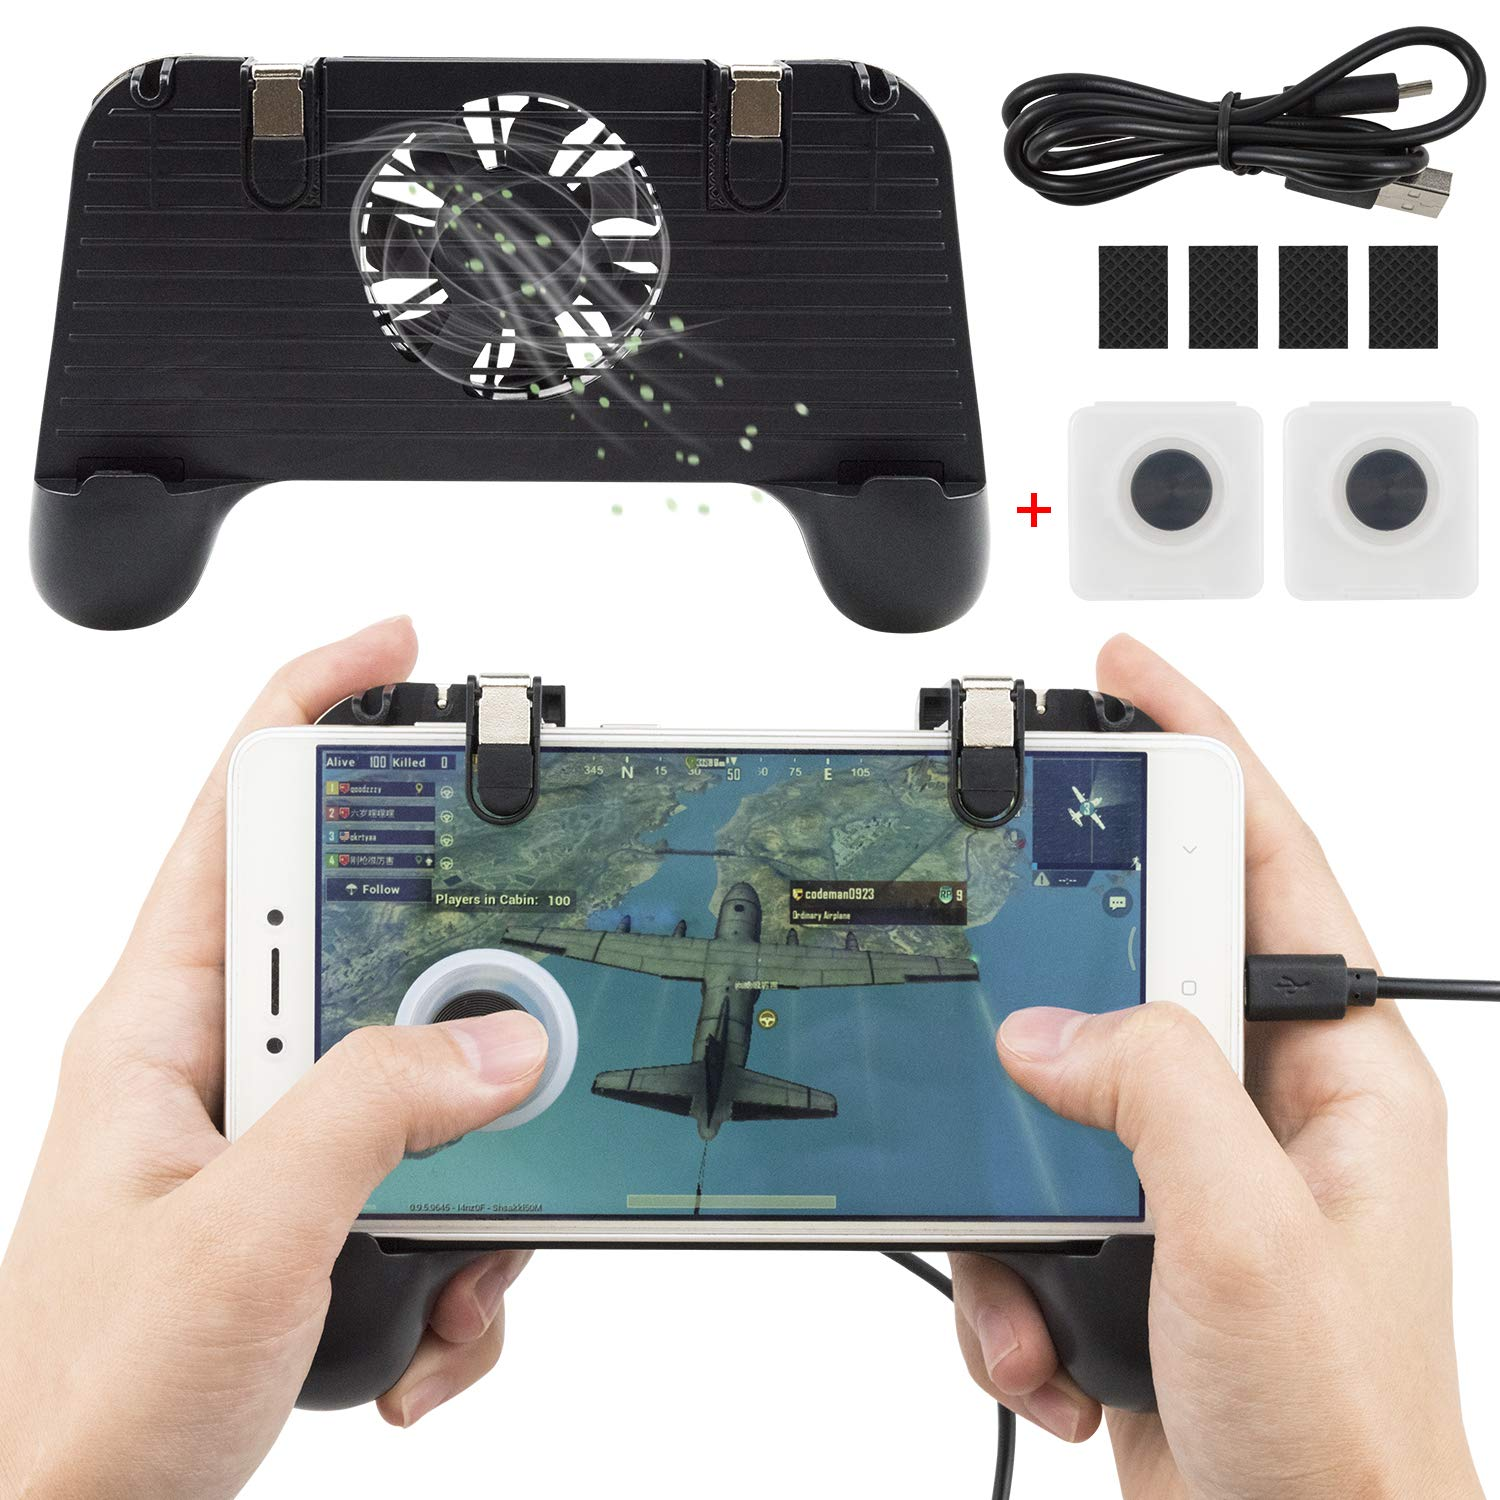 EAONE Mobile Game Controller 4 in 1 Gamepad Sensitive Shoot Aim Fire Triggers Phone Cooler Cooling Pad Power Bank with 2Pcs Sucker Joysticks for PUBG/Rules of Survival Fit iOS and Android